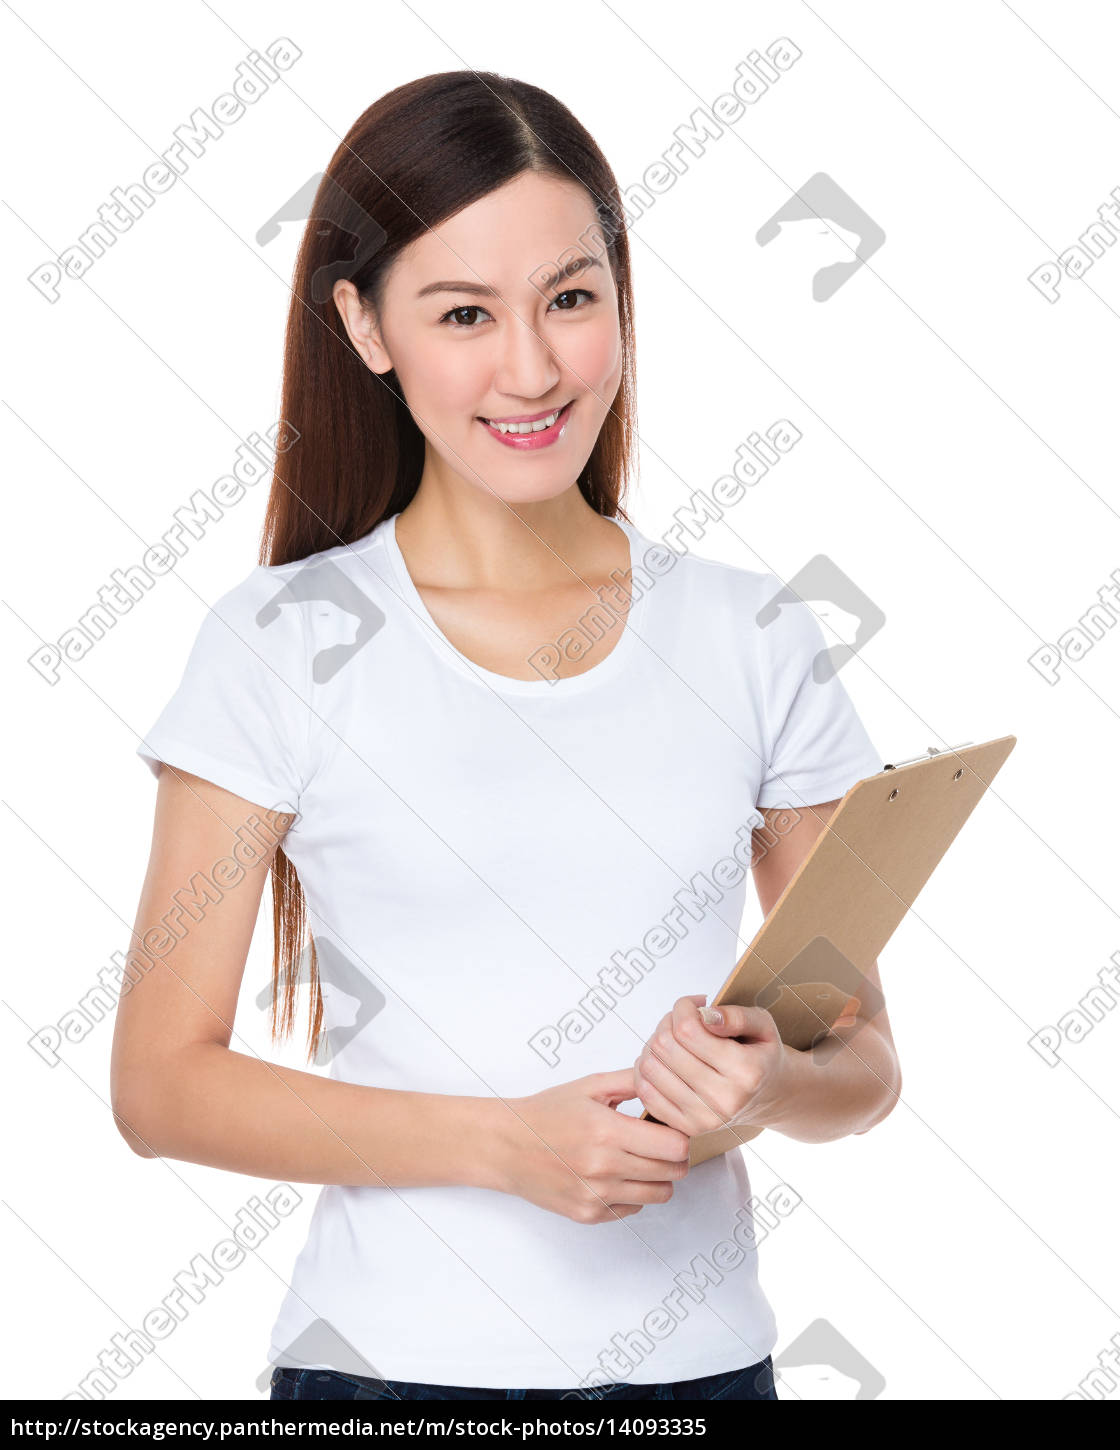 woman, with, clipboard - 14093335